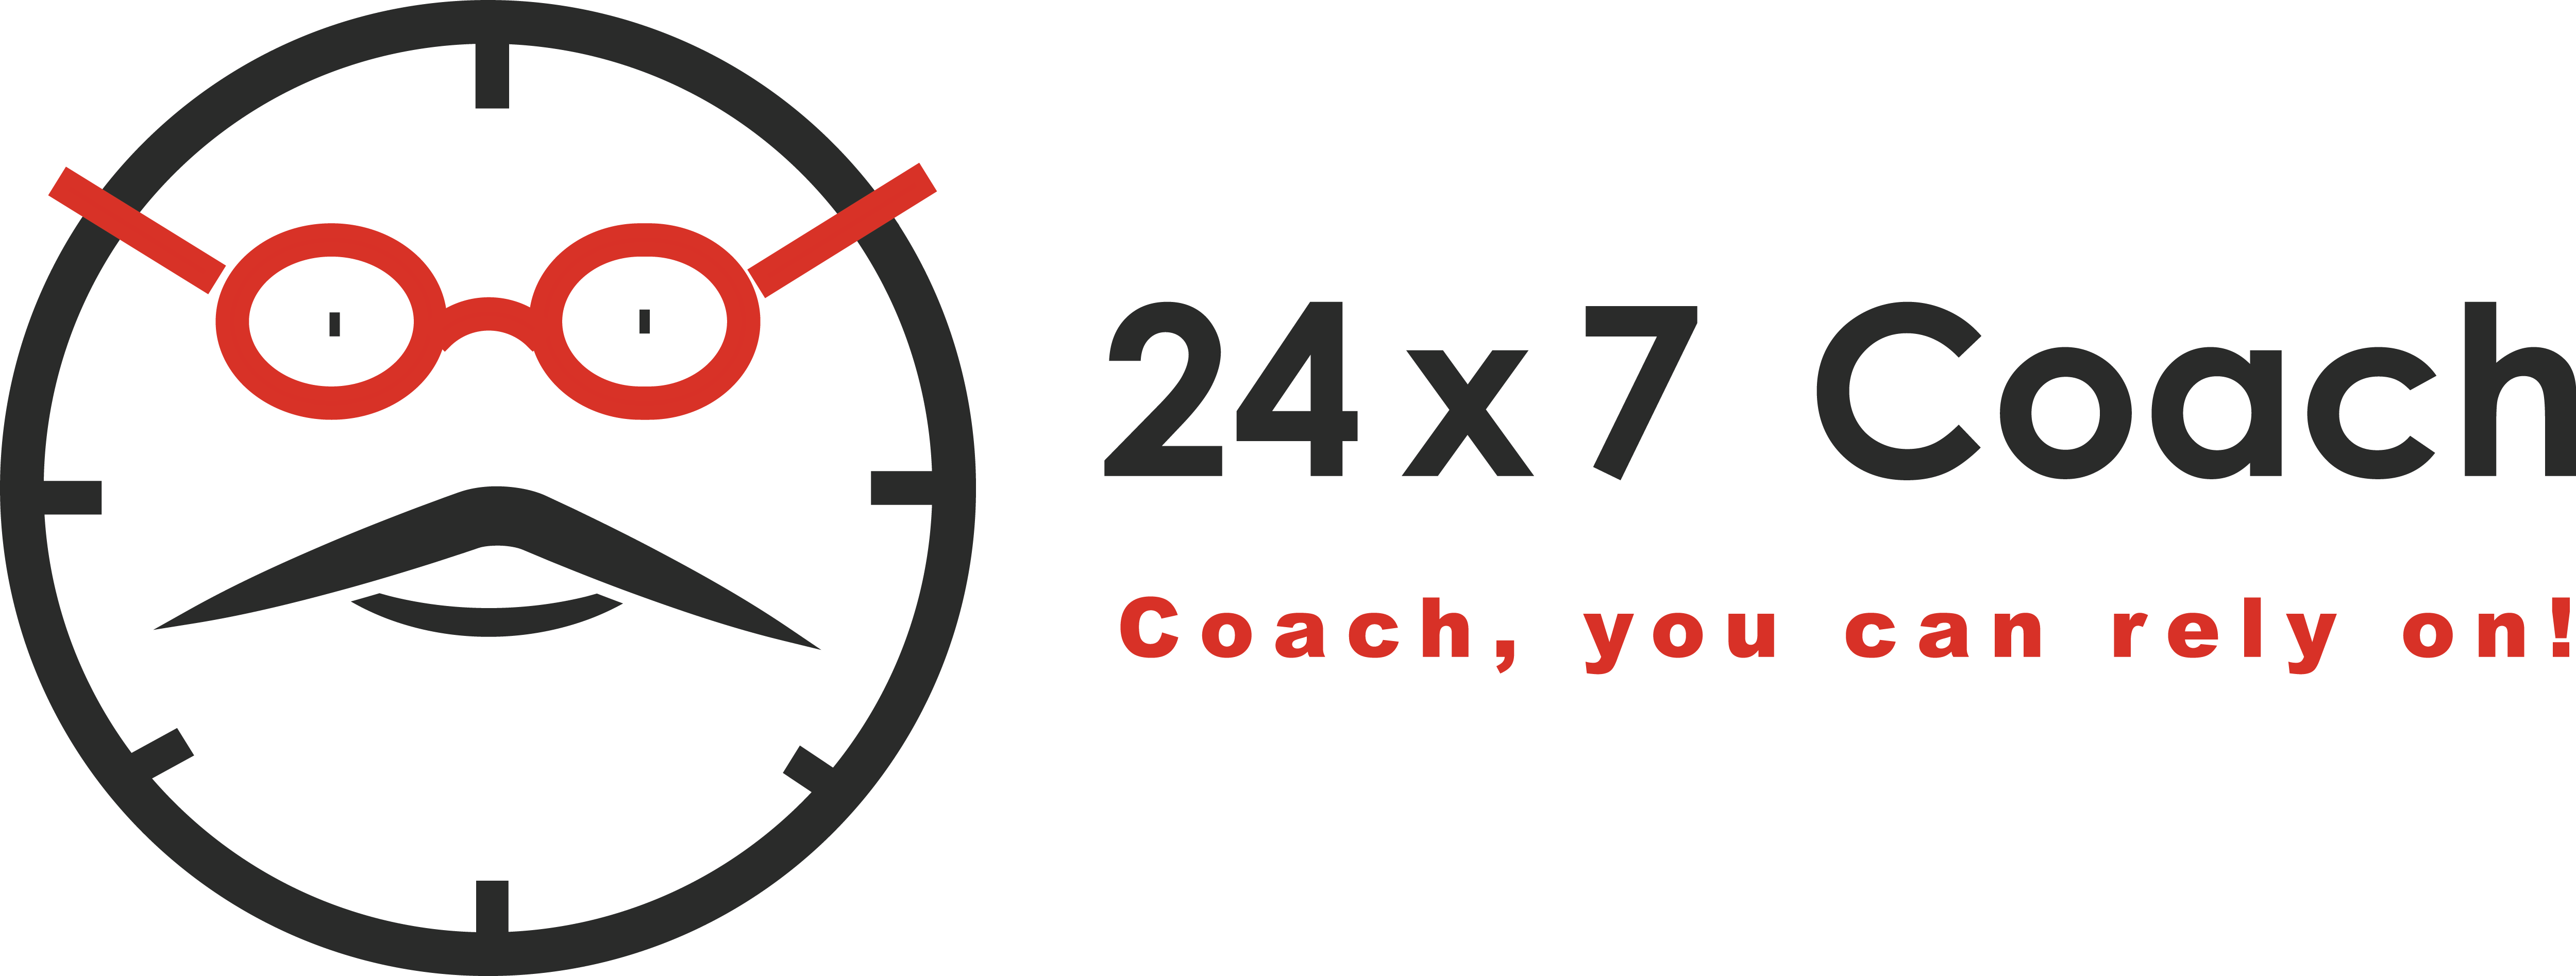 More about 24x7Coach.com